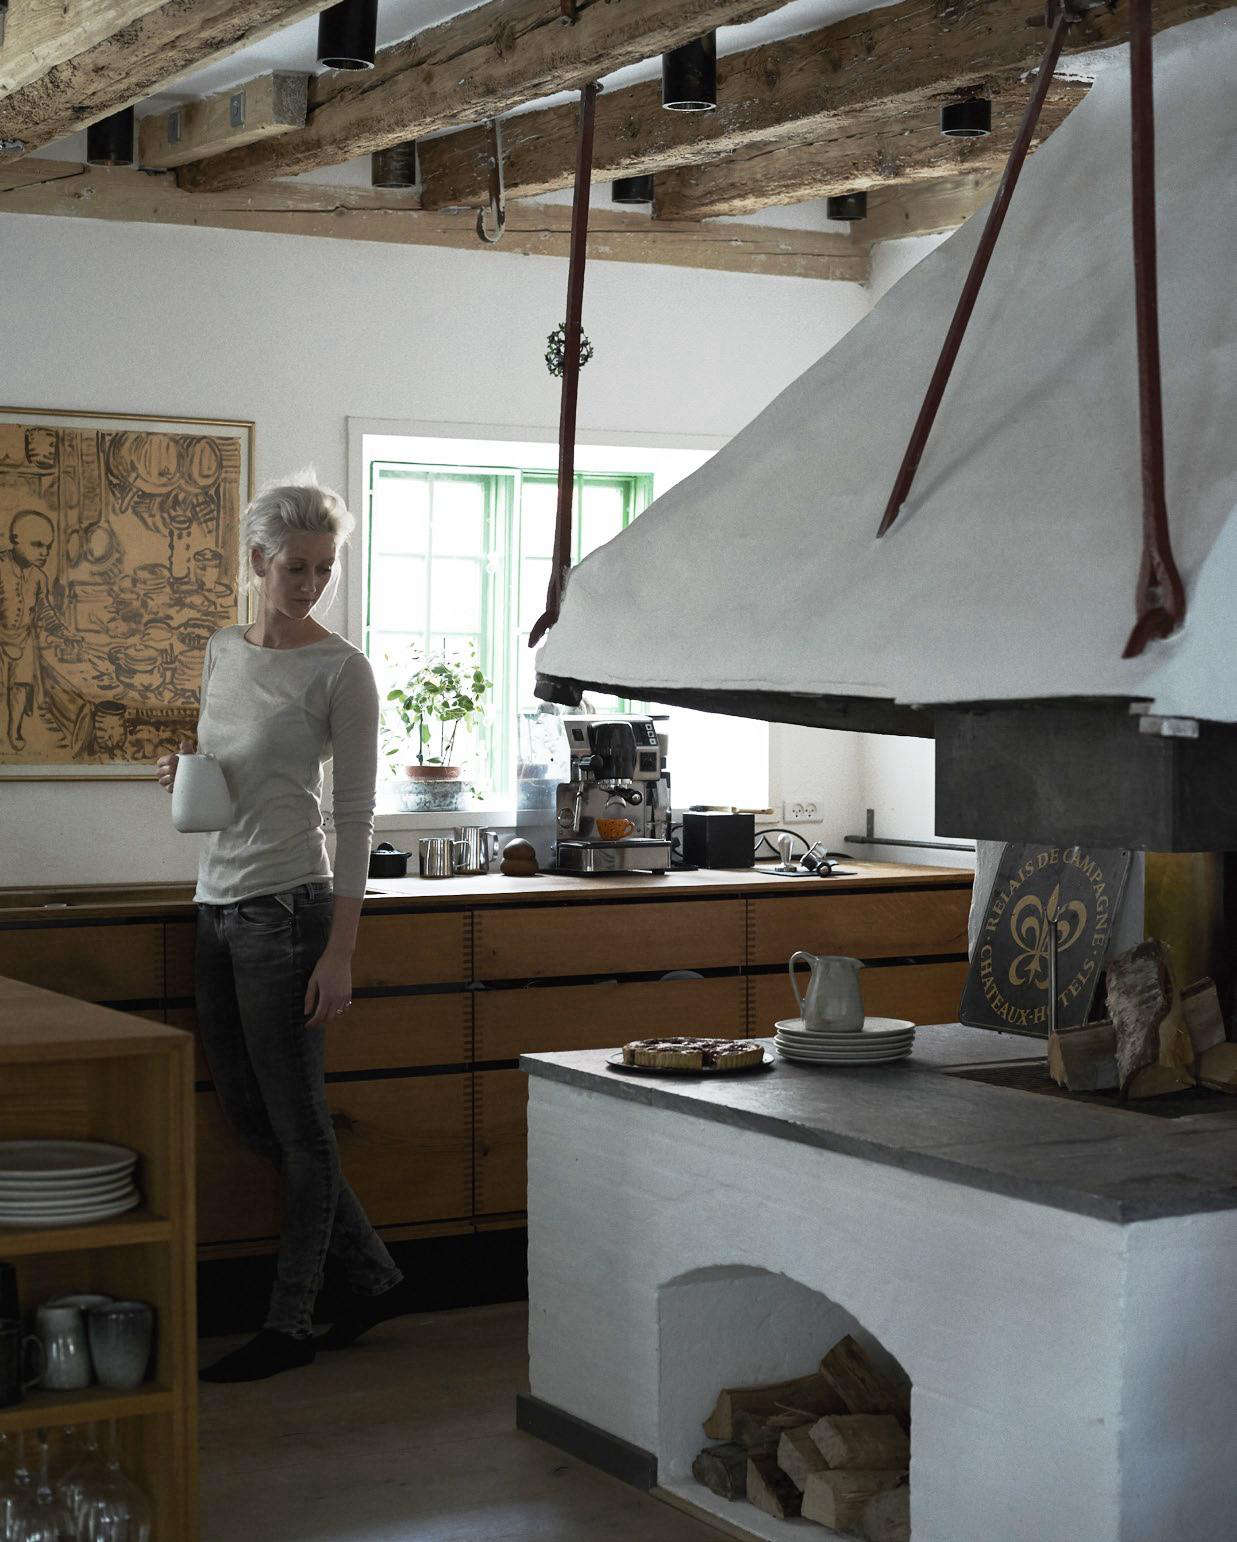 Nadine by the woodstove. Photograph by Ditte Isager.